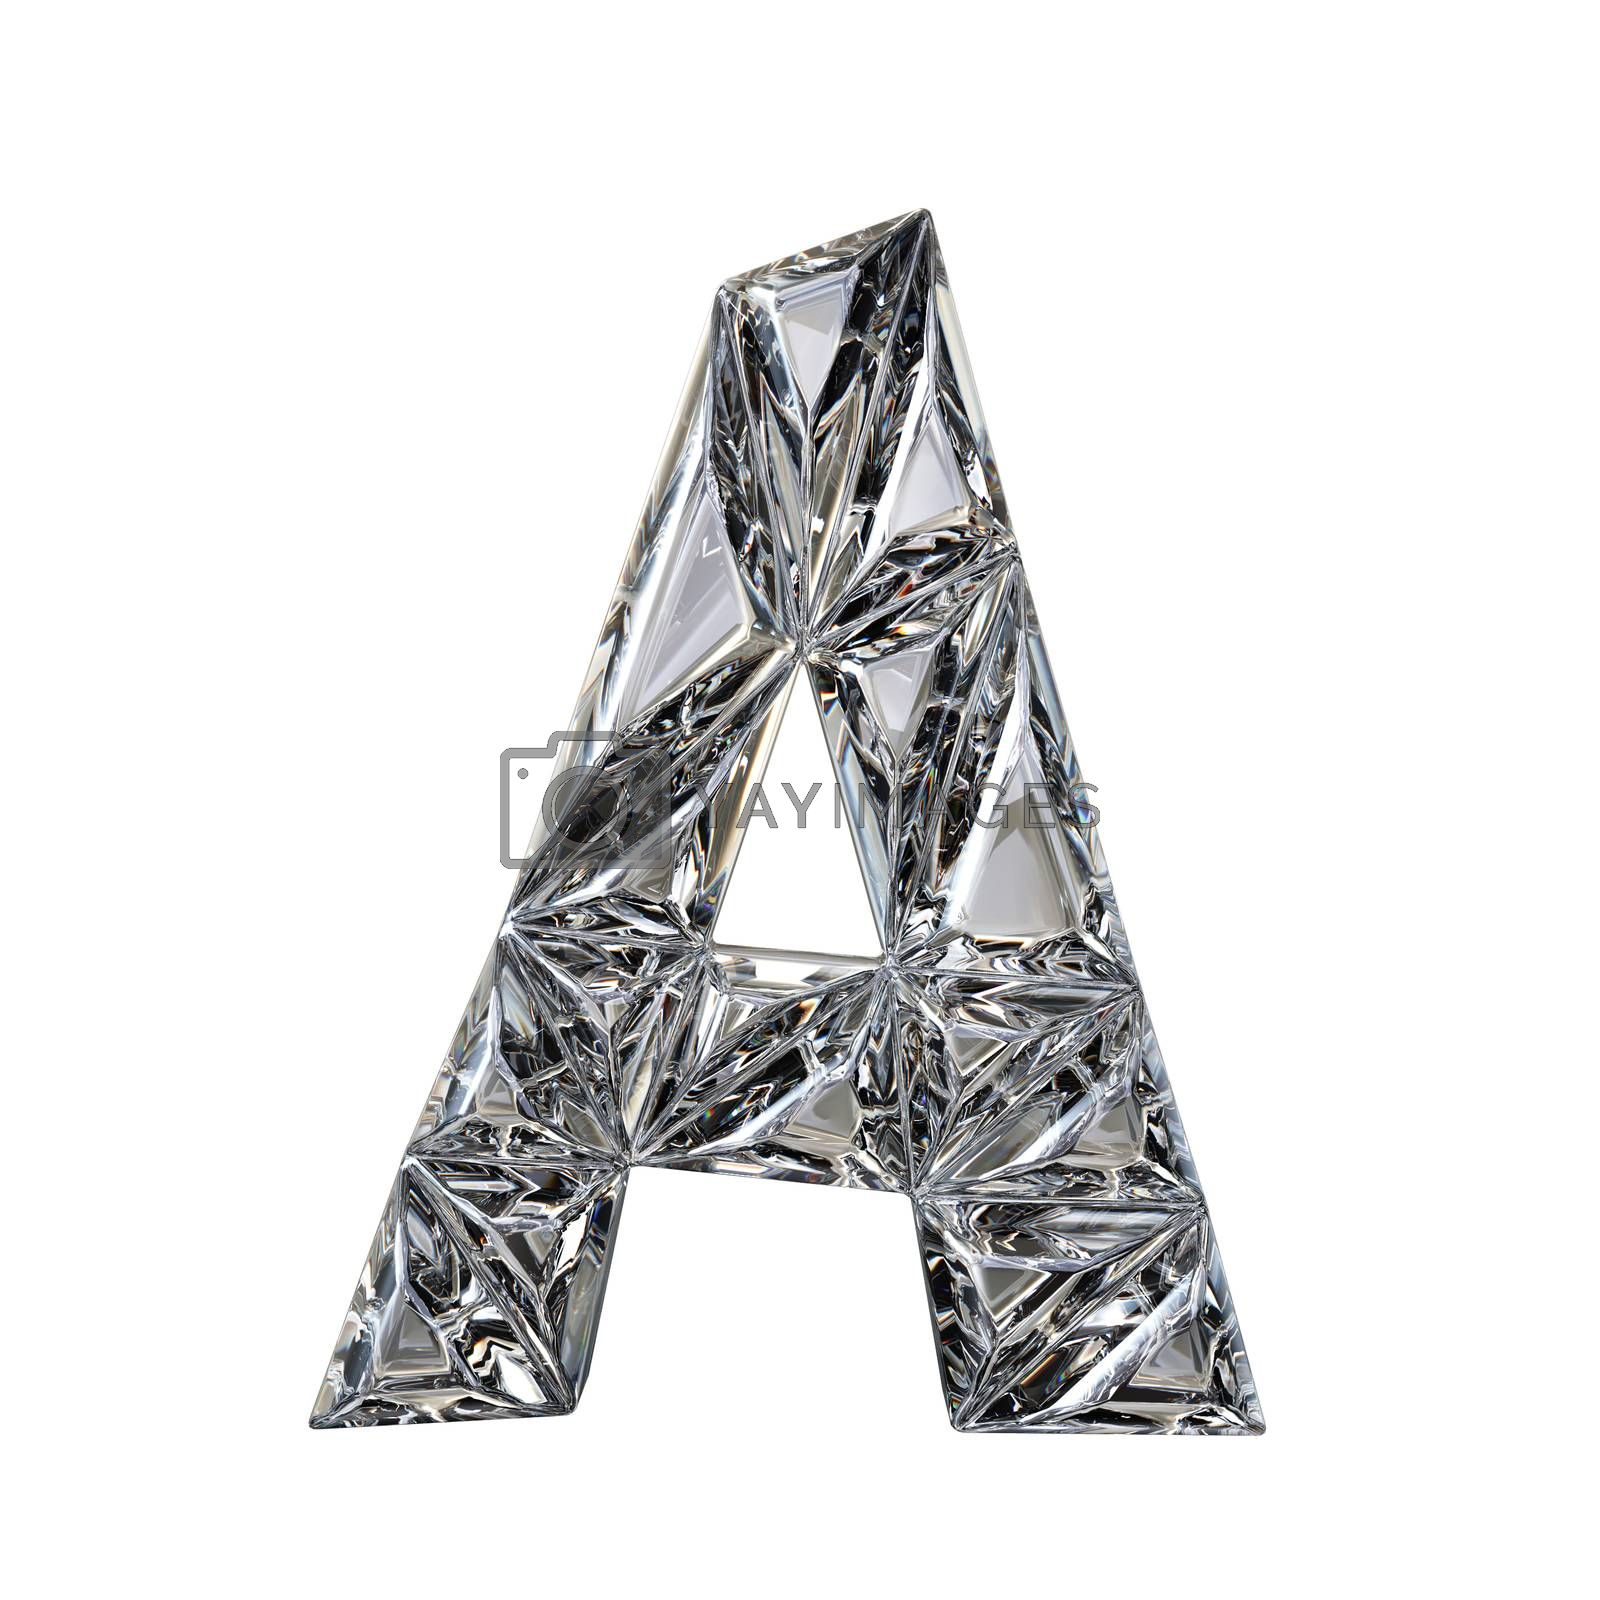 Crystal triangulated font letter A 3D render by djmilic